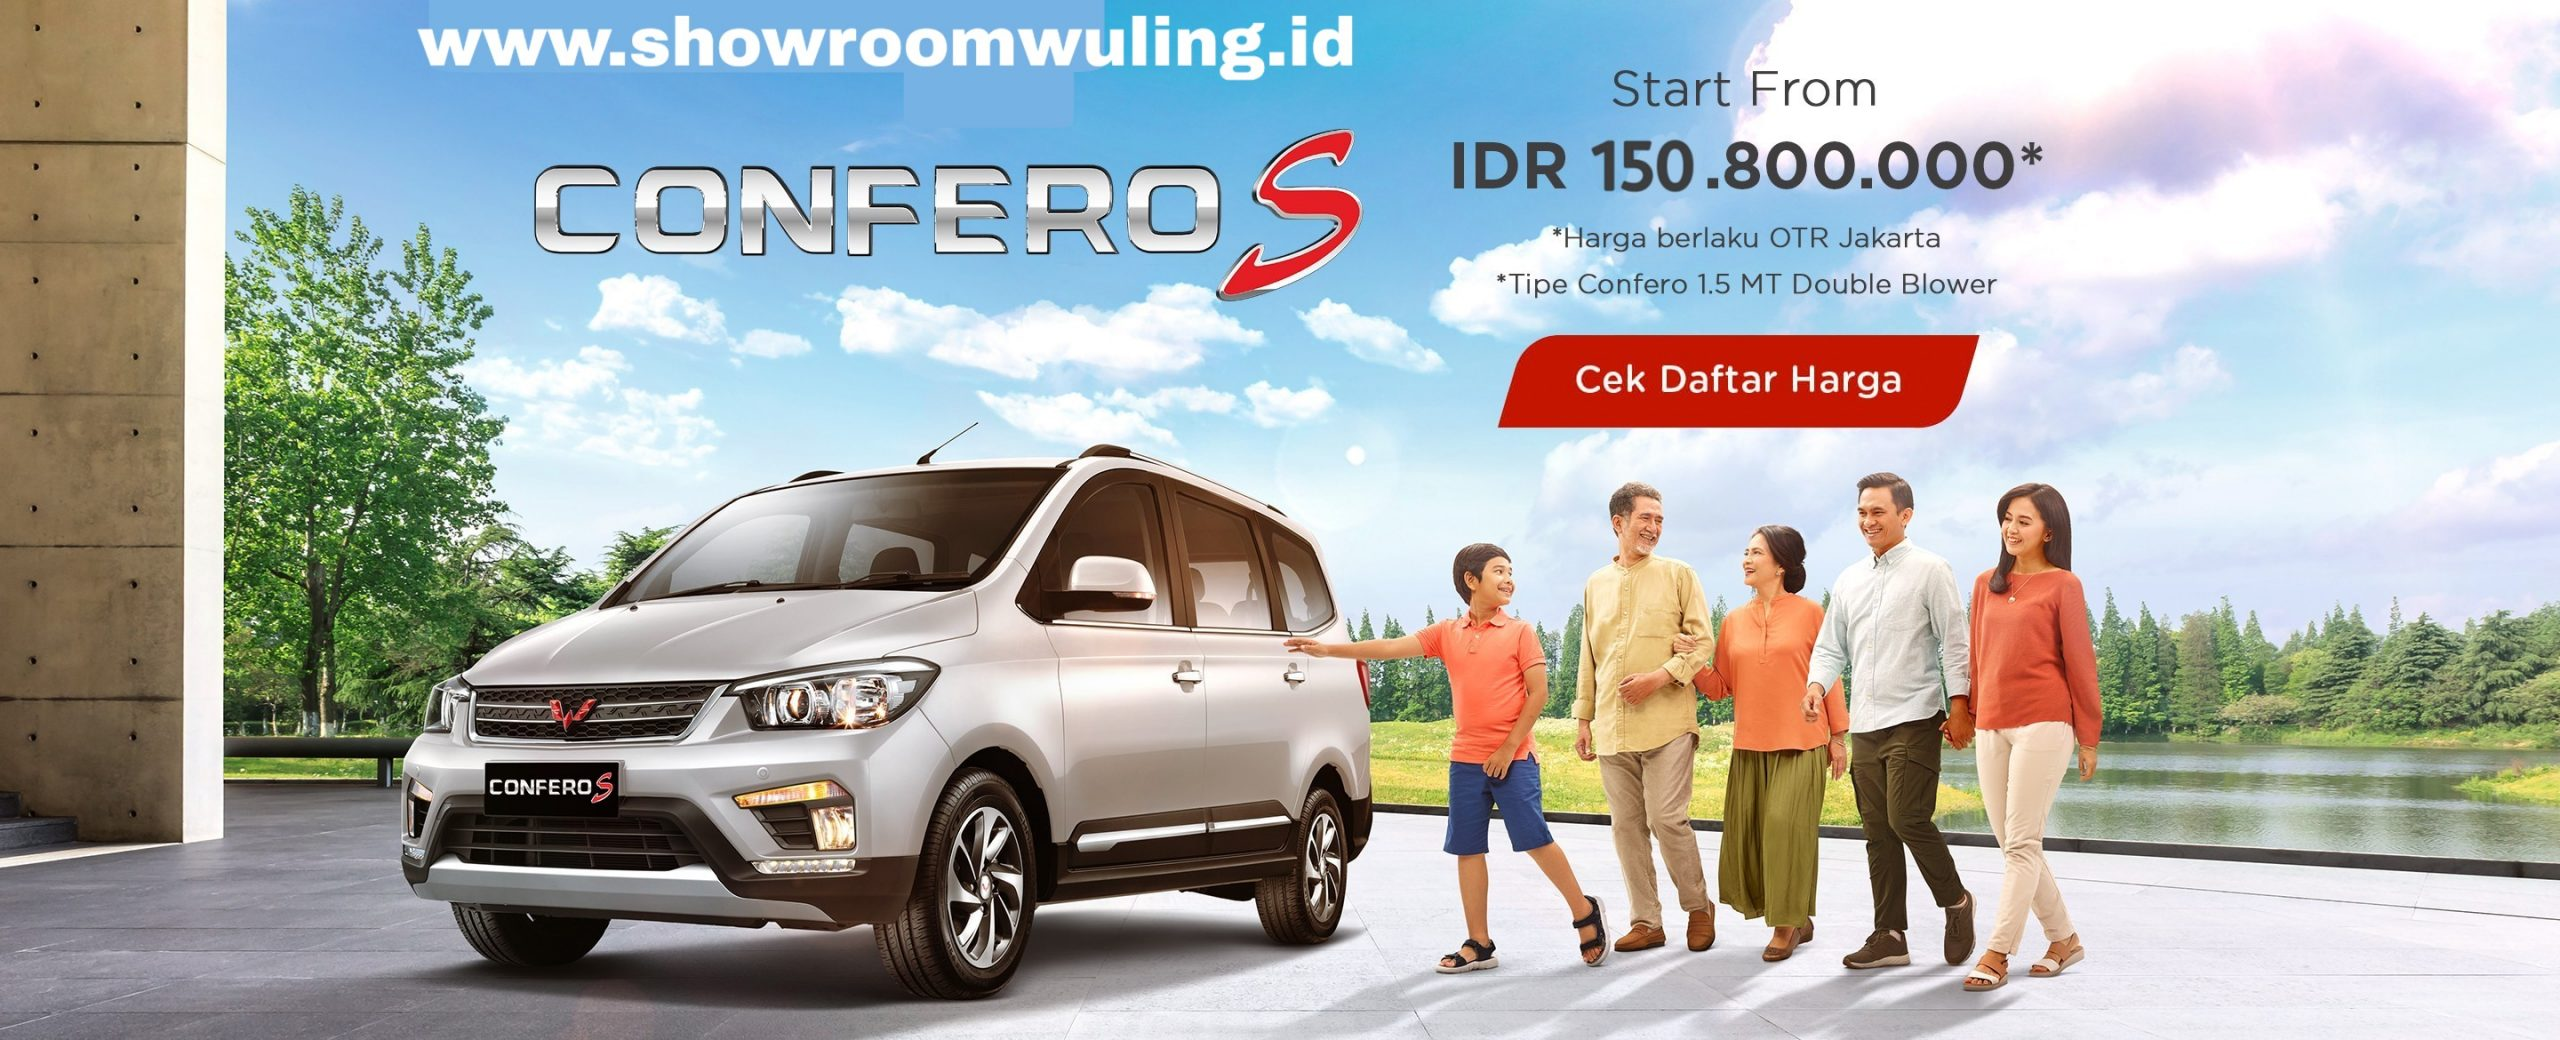 SHOWROOM WULING